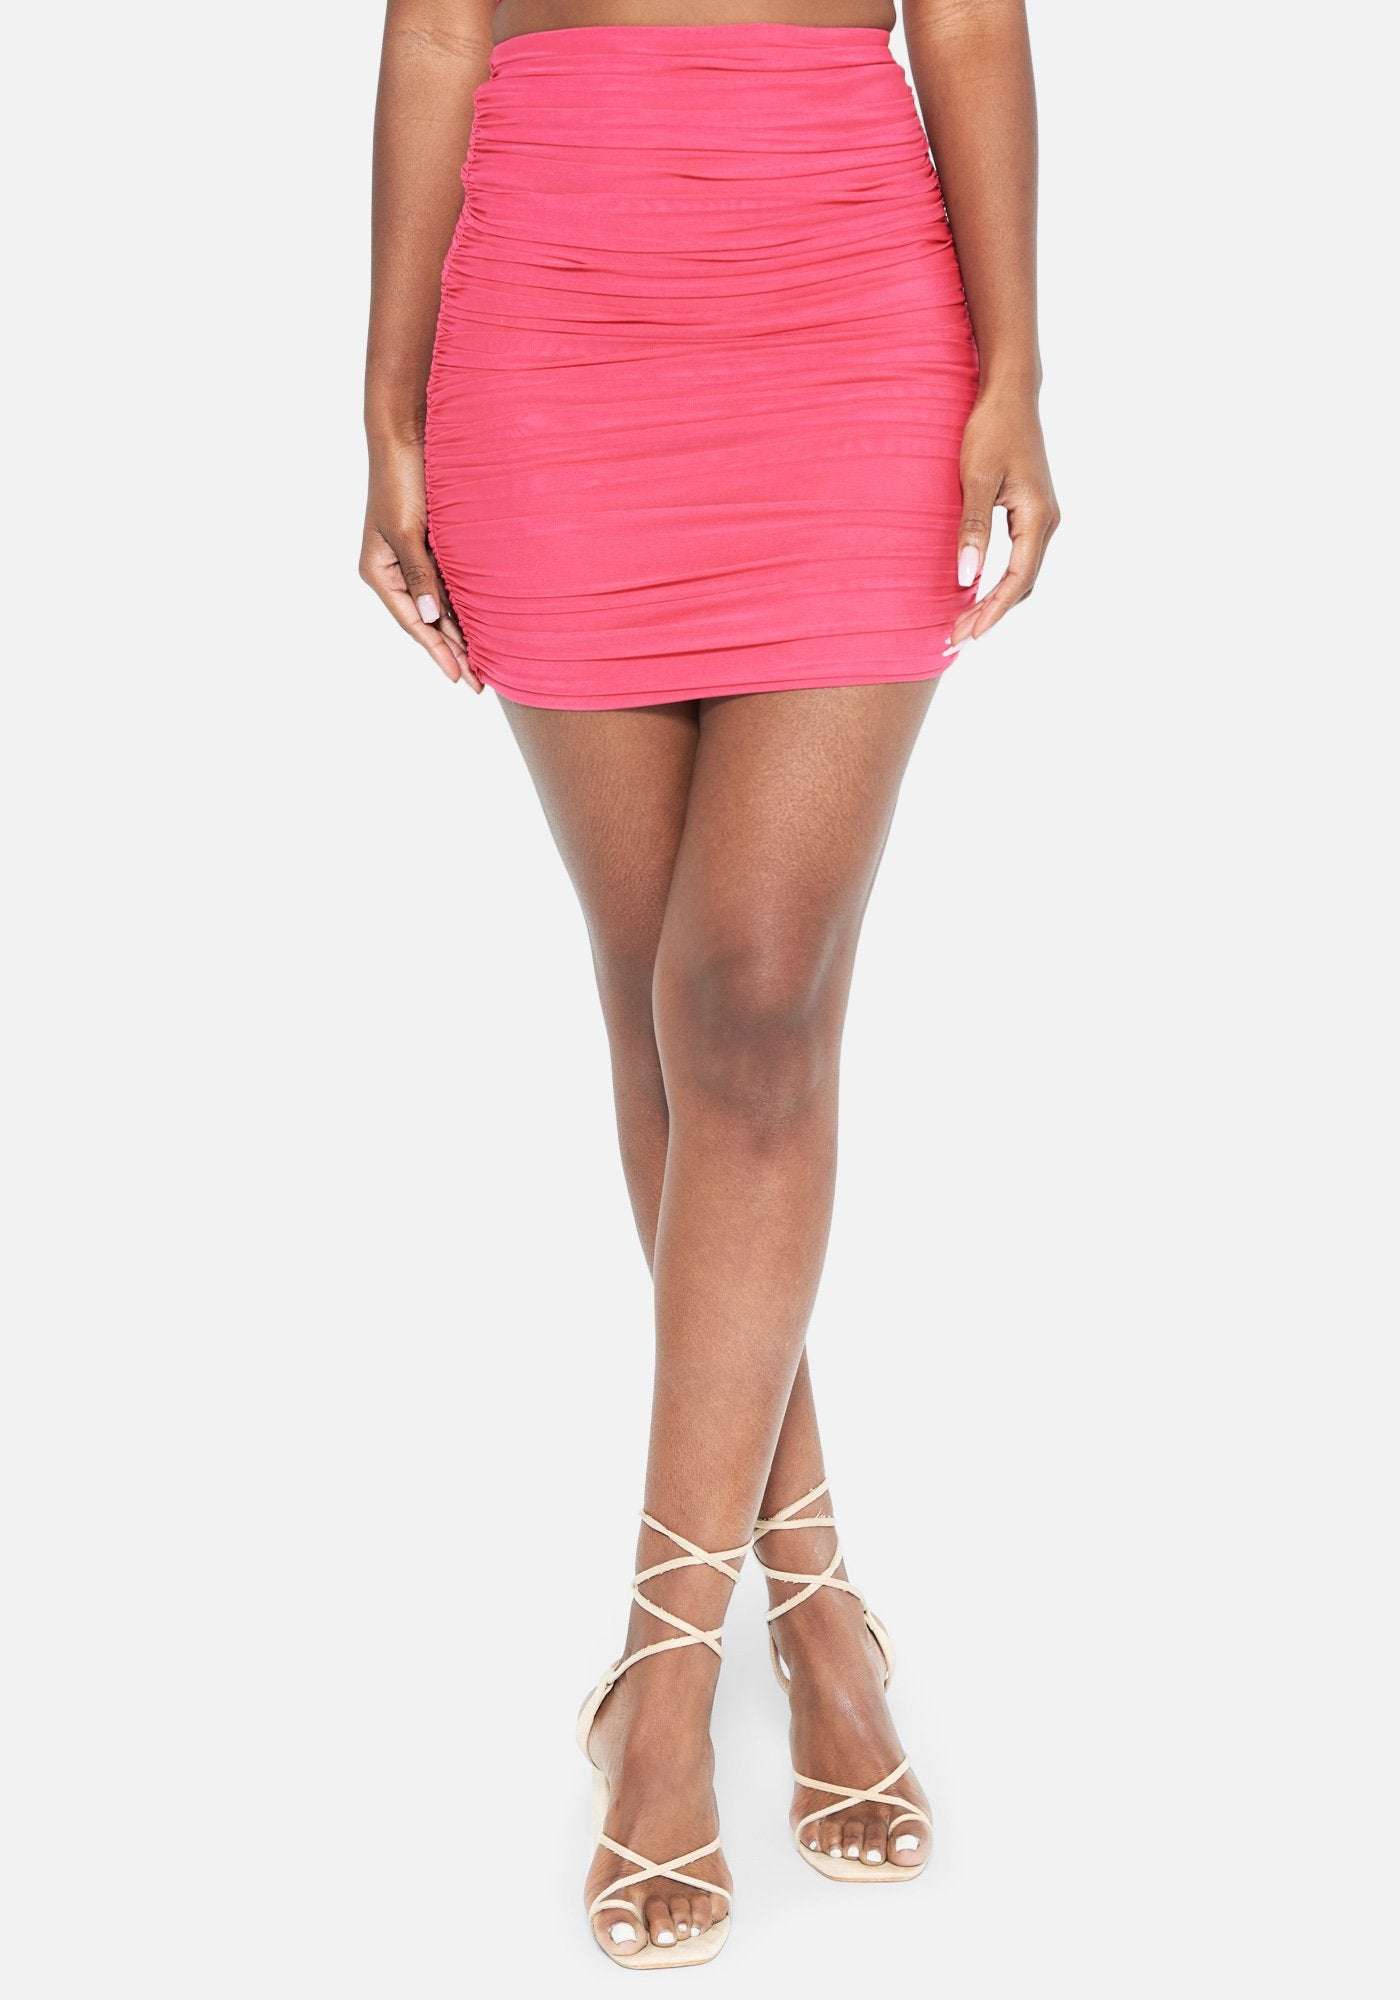 Bebe Women's Eden Ruched Mesh Skirt, Size XXS in Beet Root Spandex